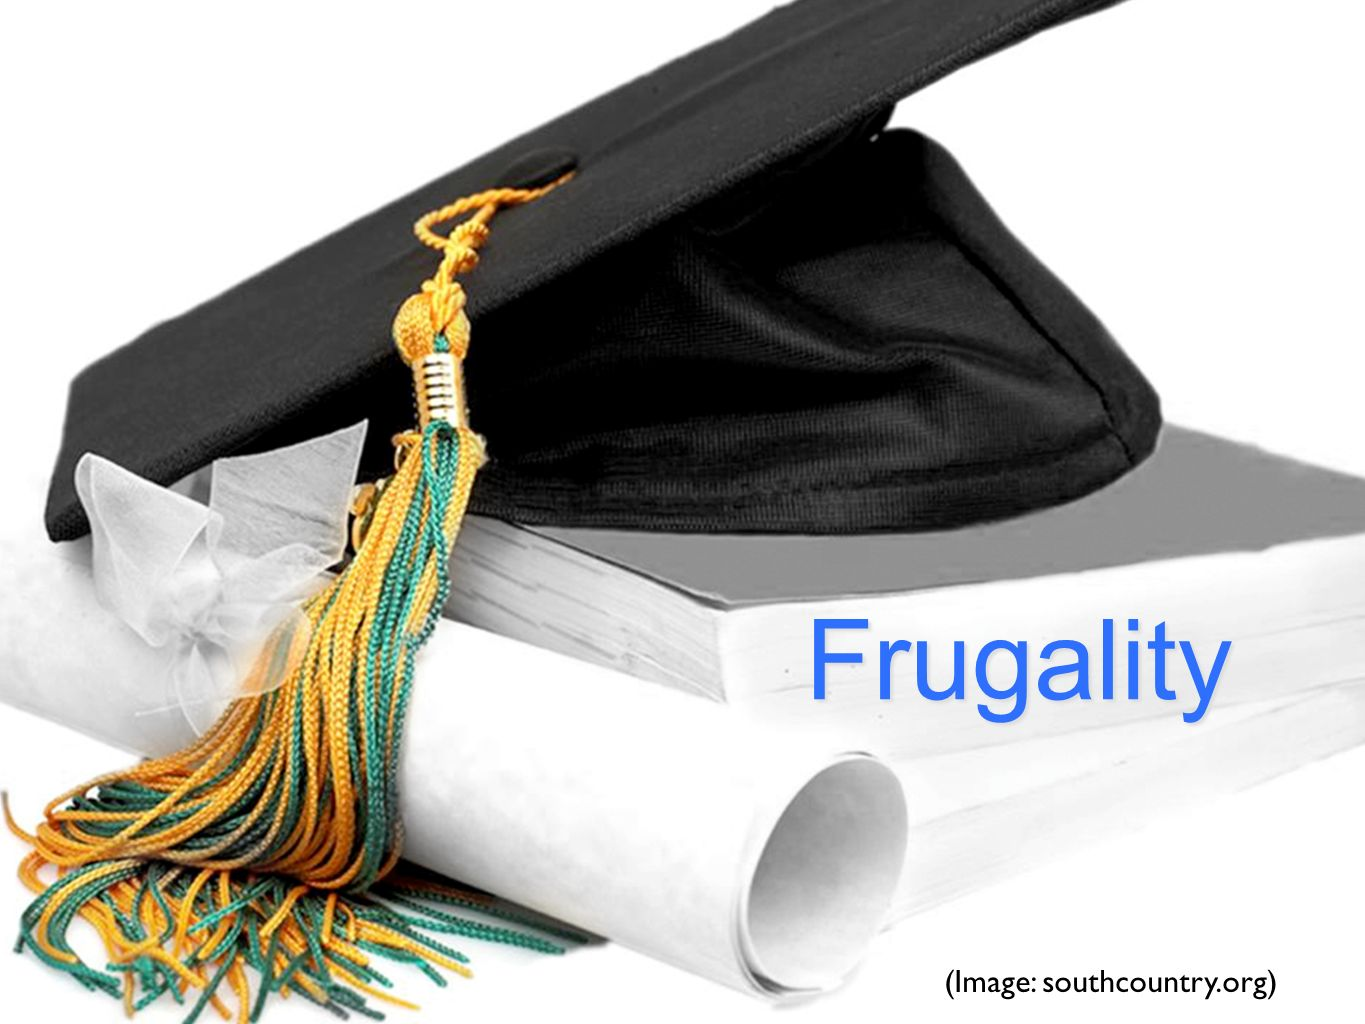 Frugality (Image: southcountry.org)